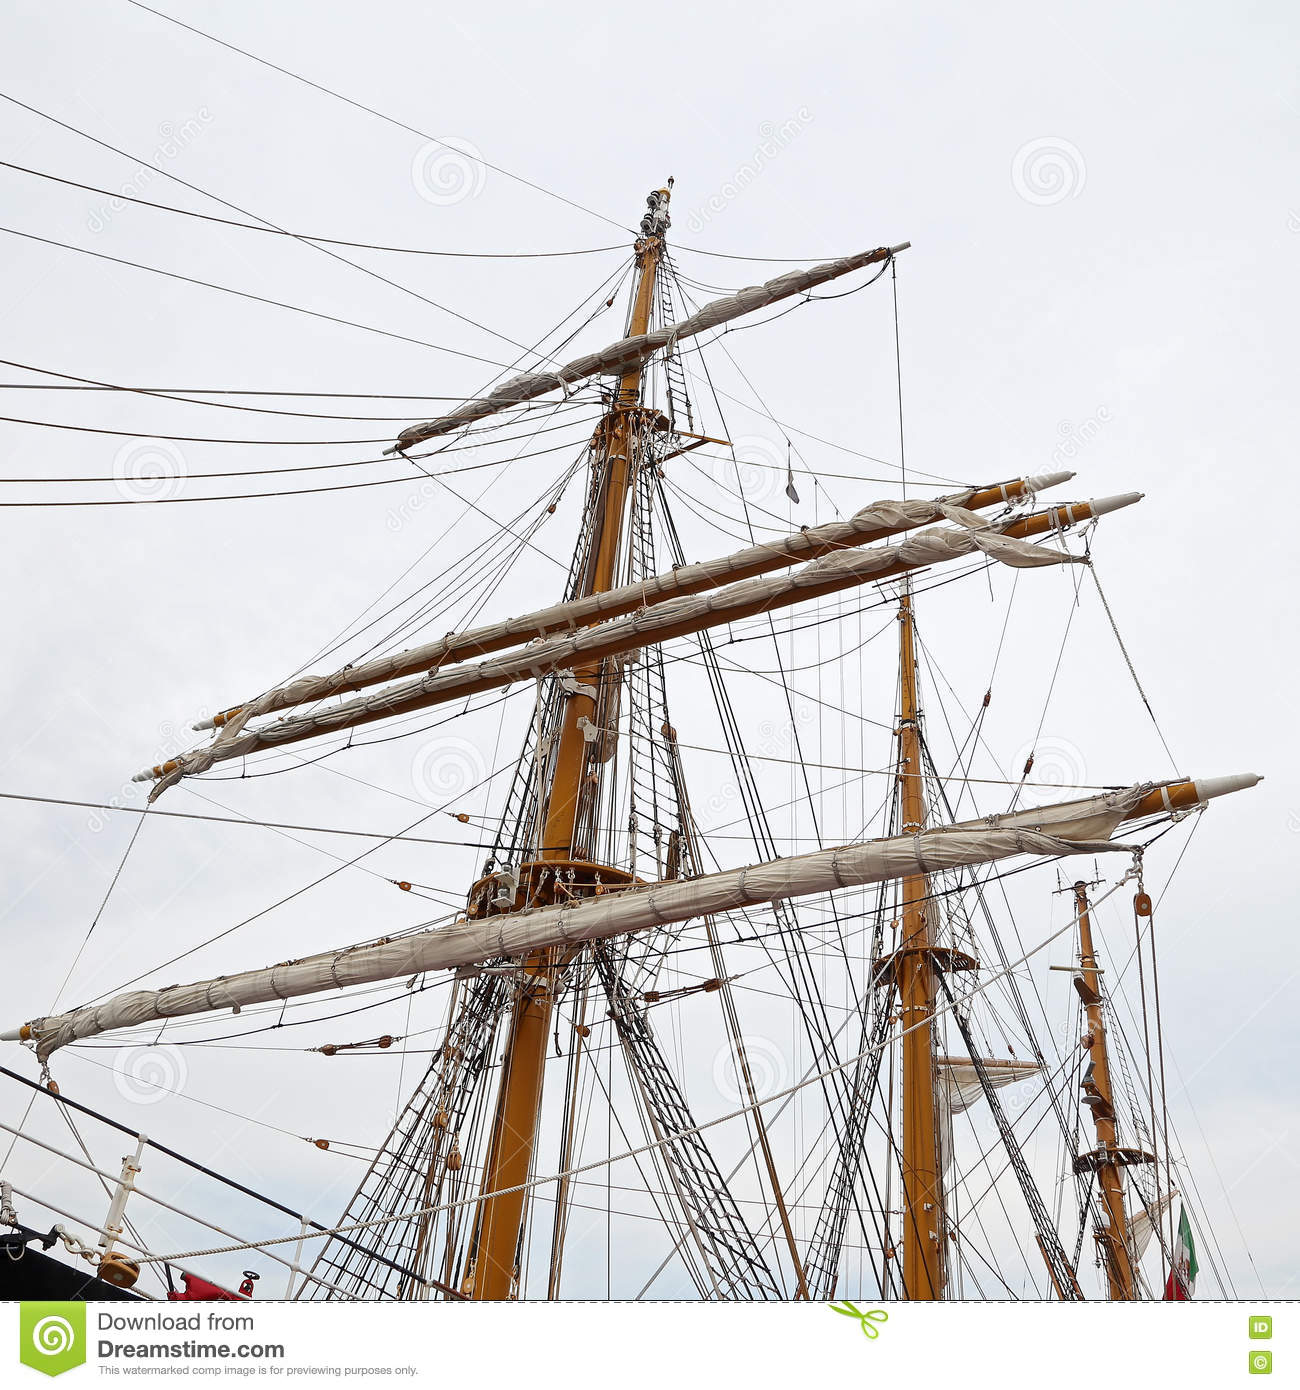 The Three Masted Palinuro A Historic Italian Navy Training Electricity Basic Courses Gaeta Italy June 25 2016 Barquentine Moored In Port